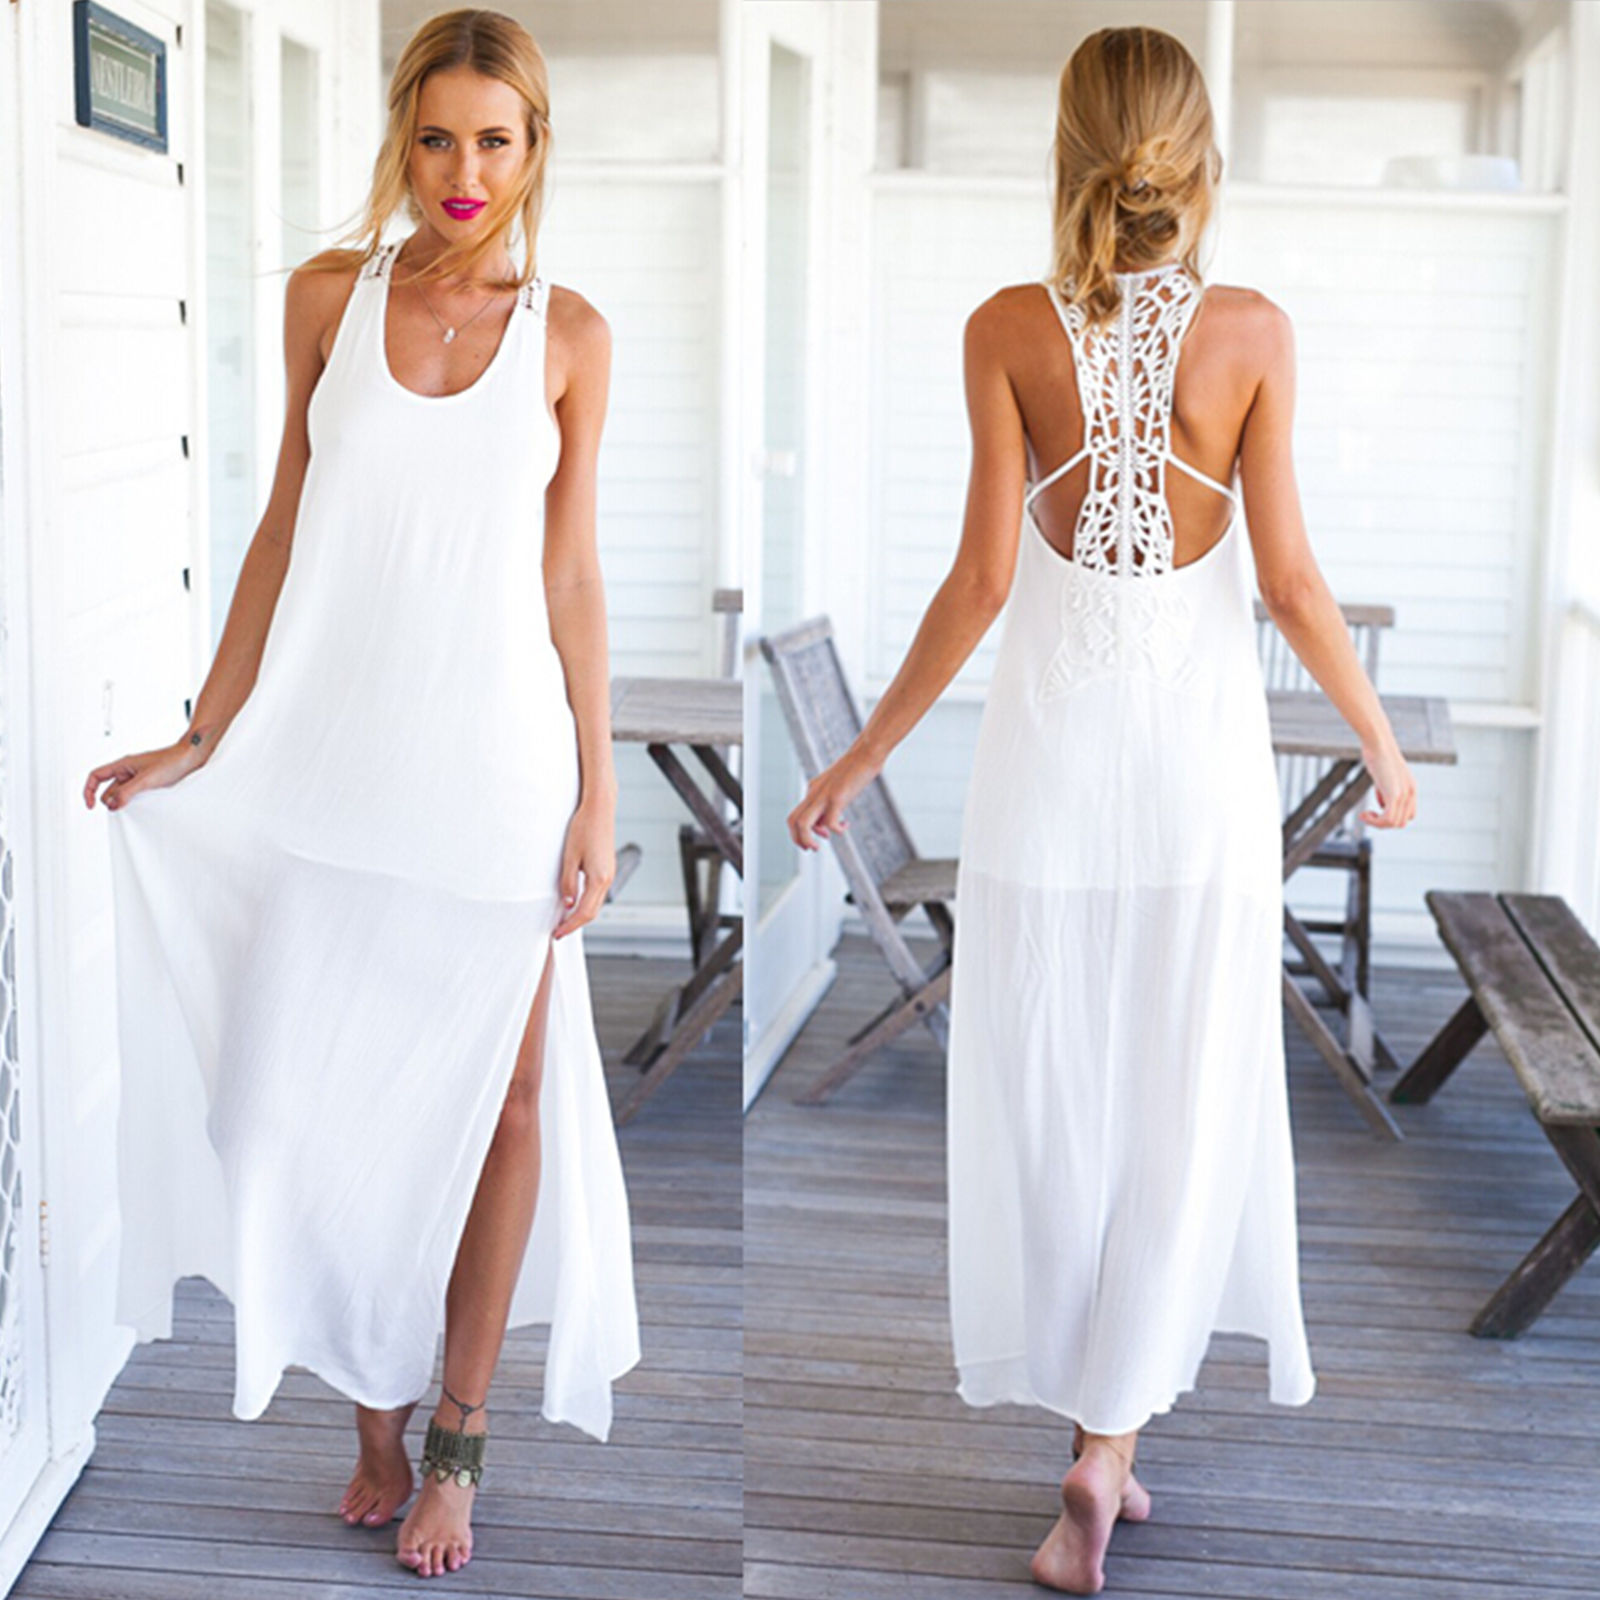 d8bbfbddc50 Women Summer Crochet Boho Evening Party Long Maxi Beach Dress Chiffon  Sundress